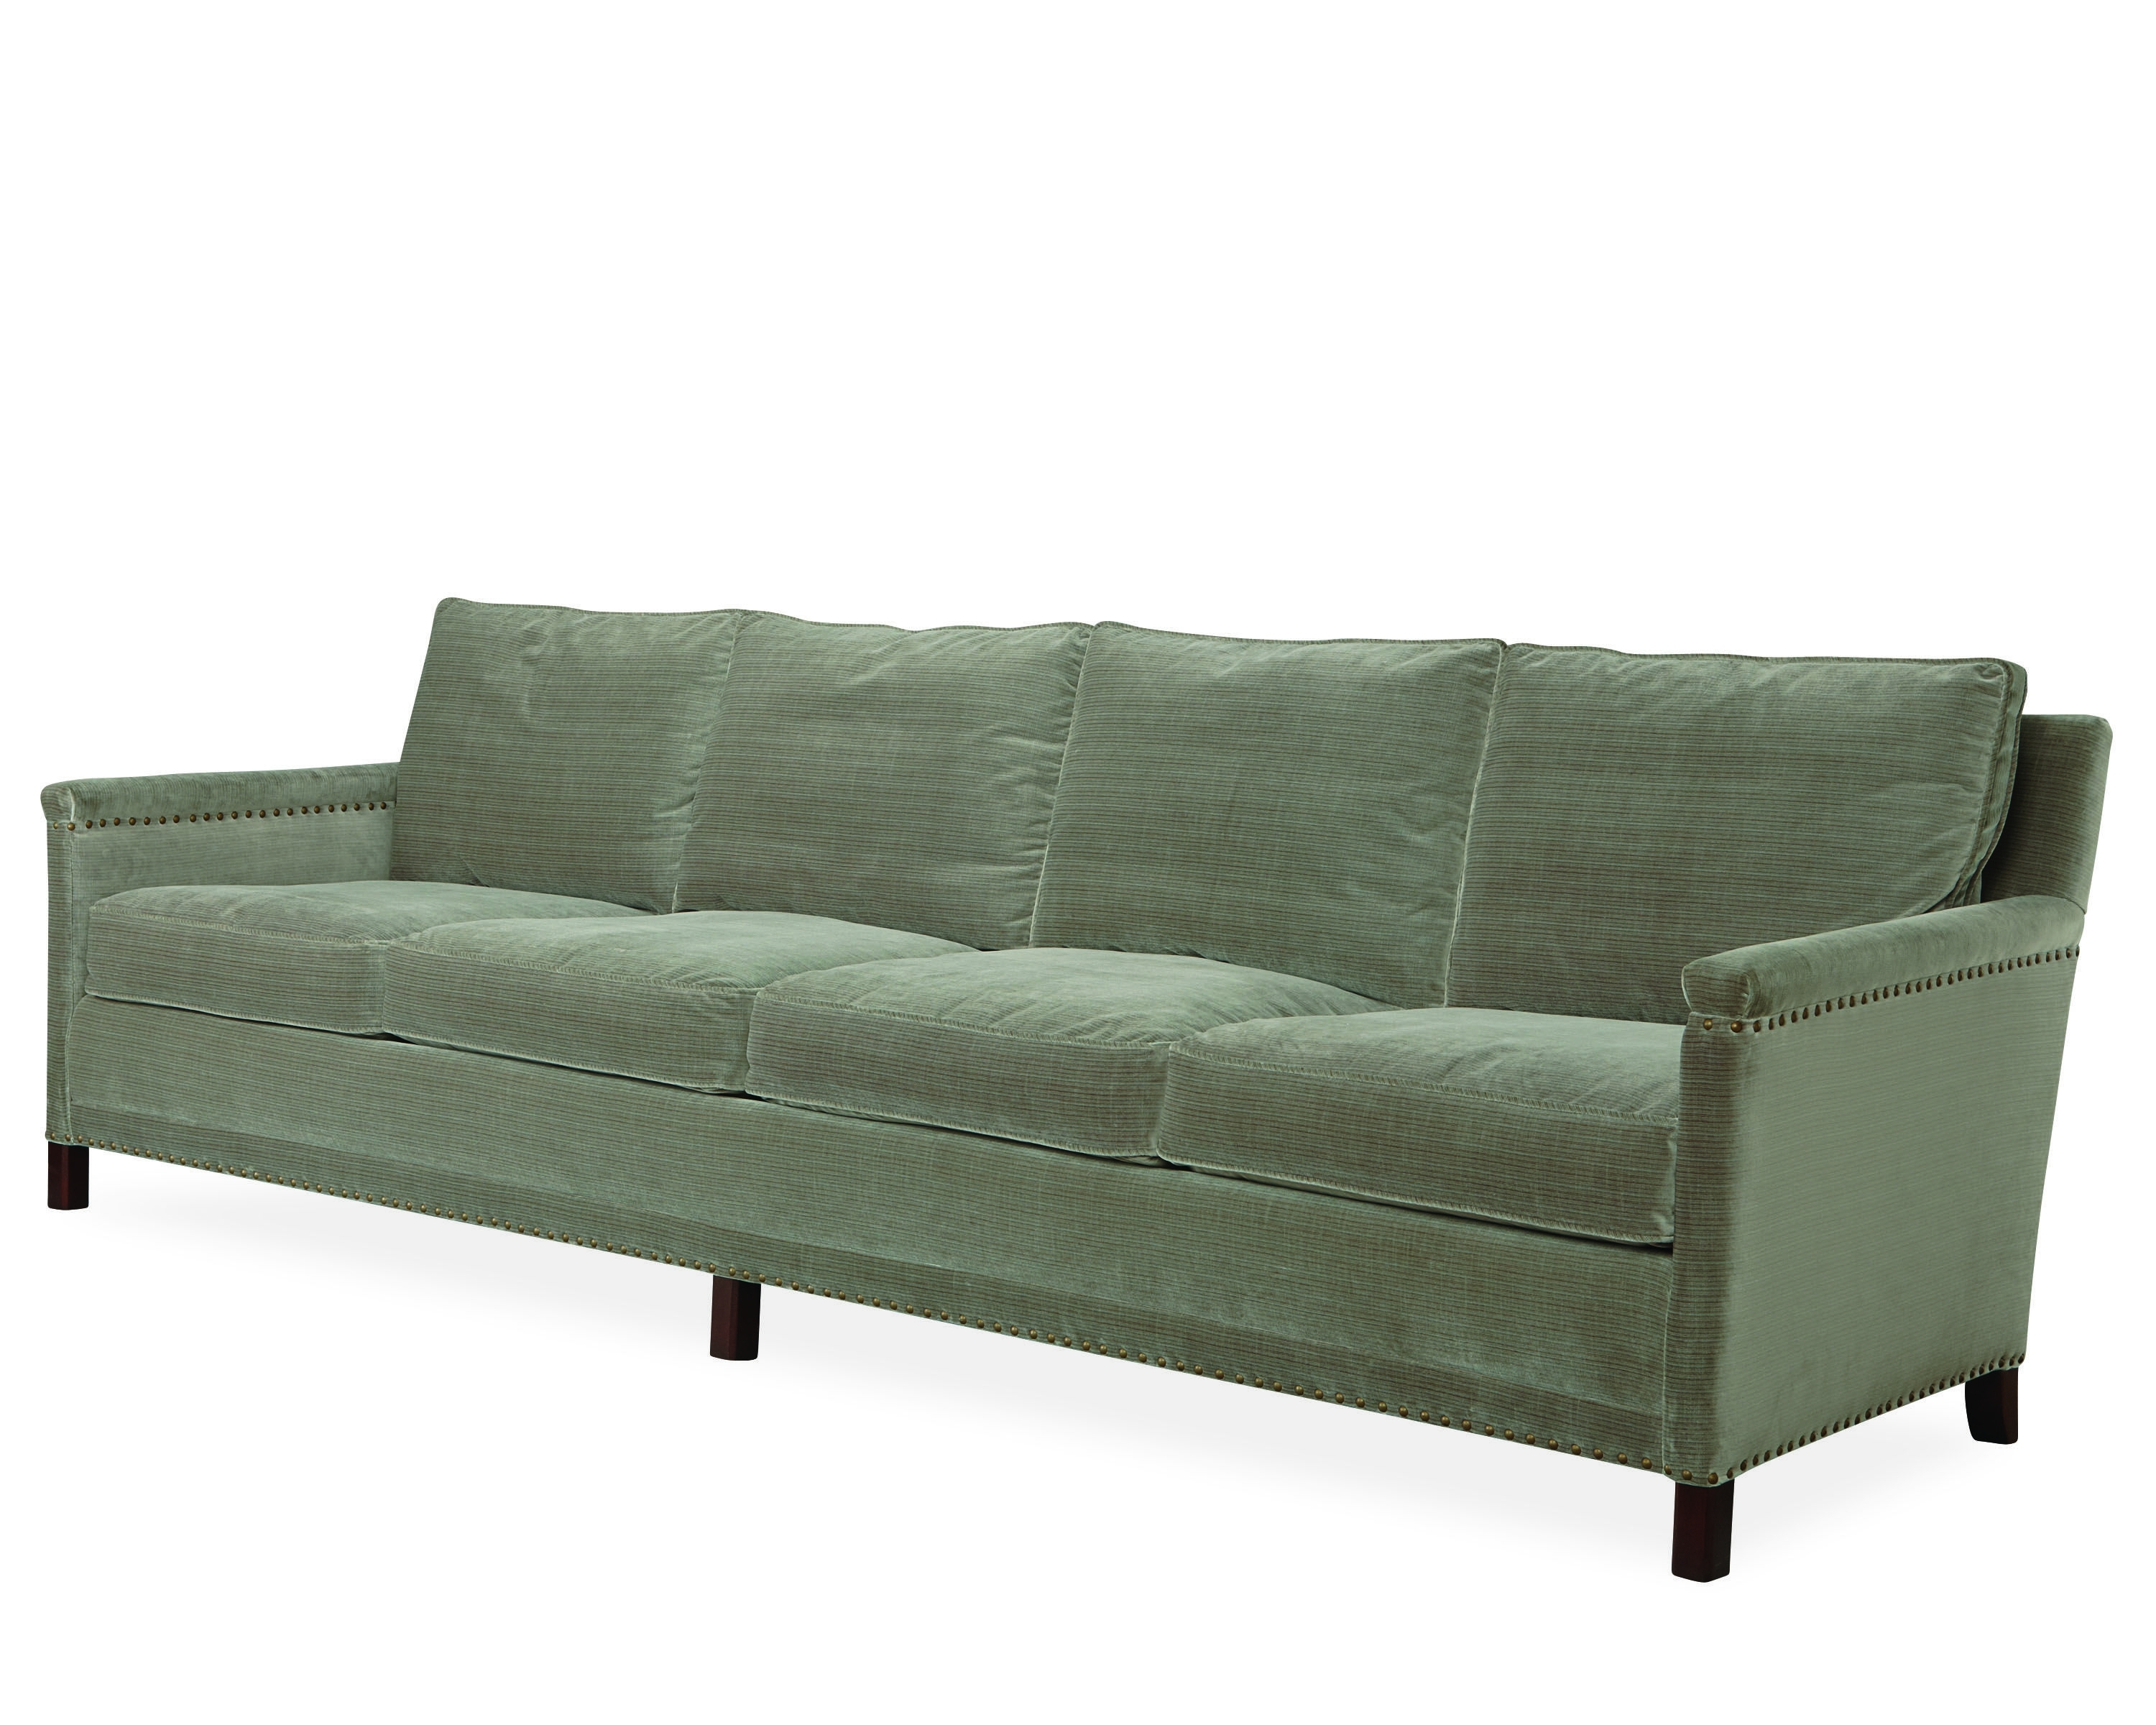 Lee // Sofas With Regard To Lee Industries Sectional Sofas (View 8 of 20)